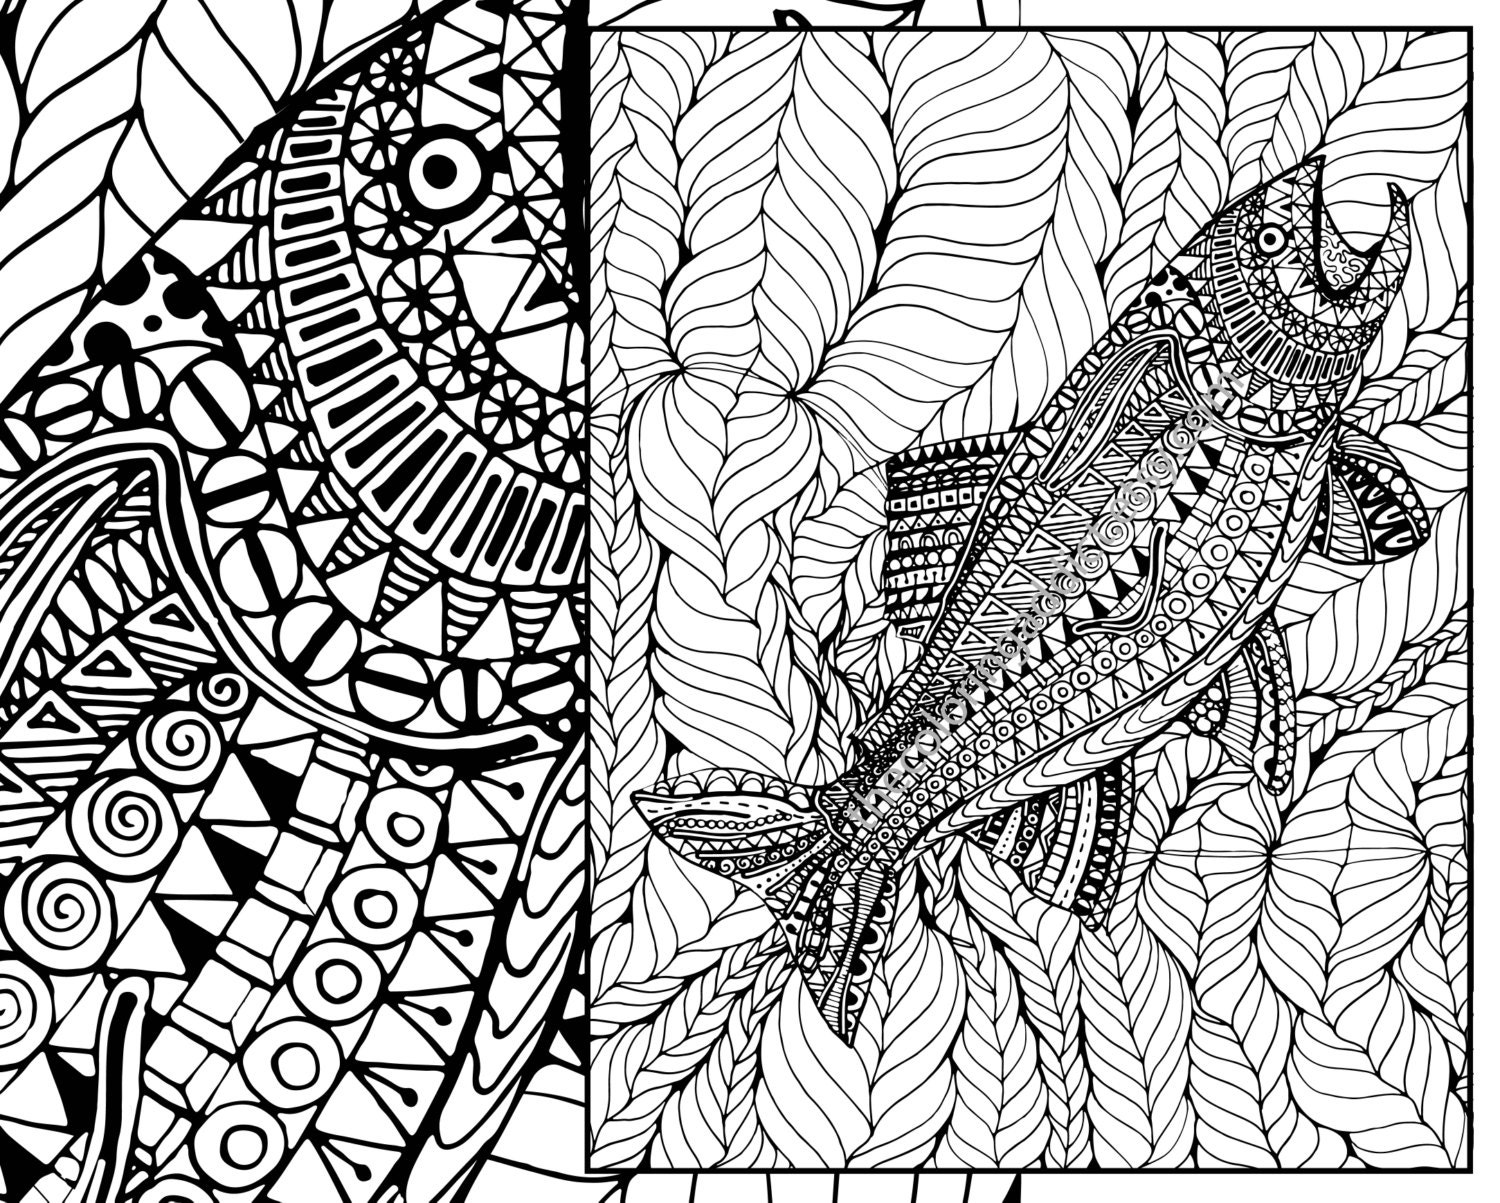 Adult coloring page adult coloring sheet ocean colouring | Etsy